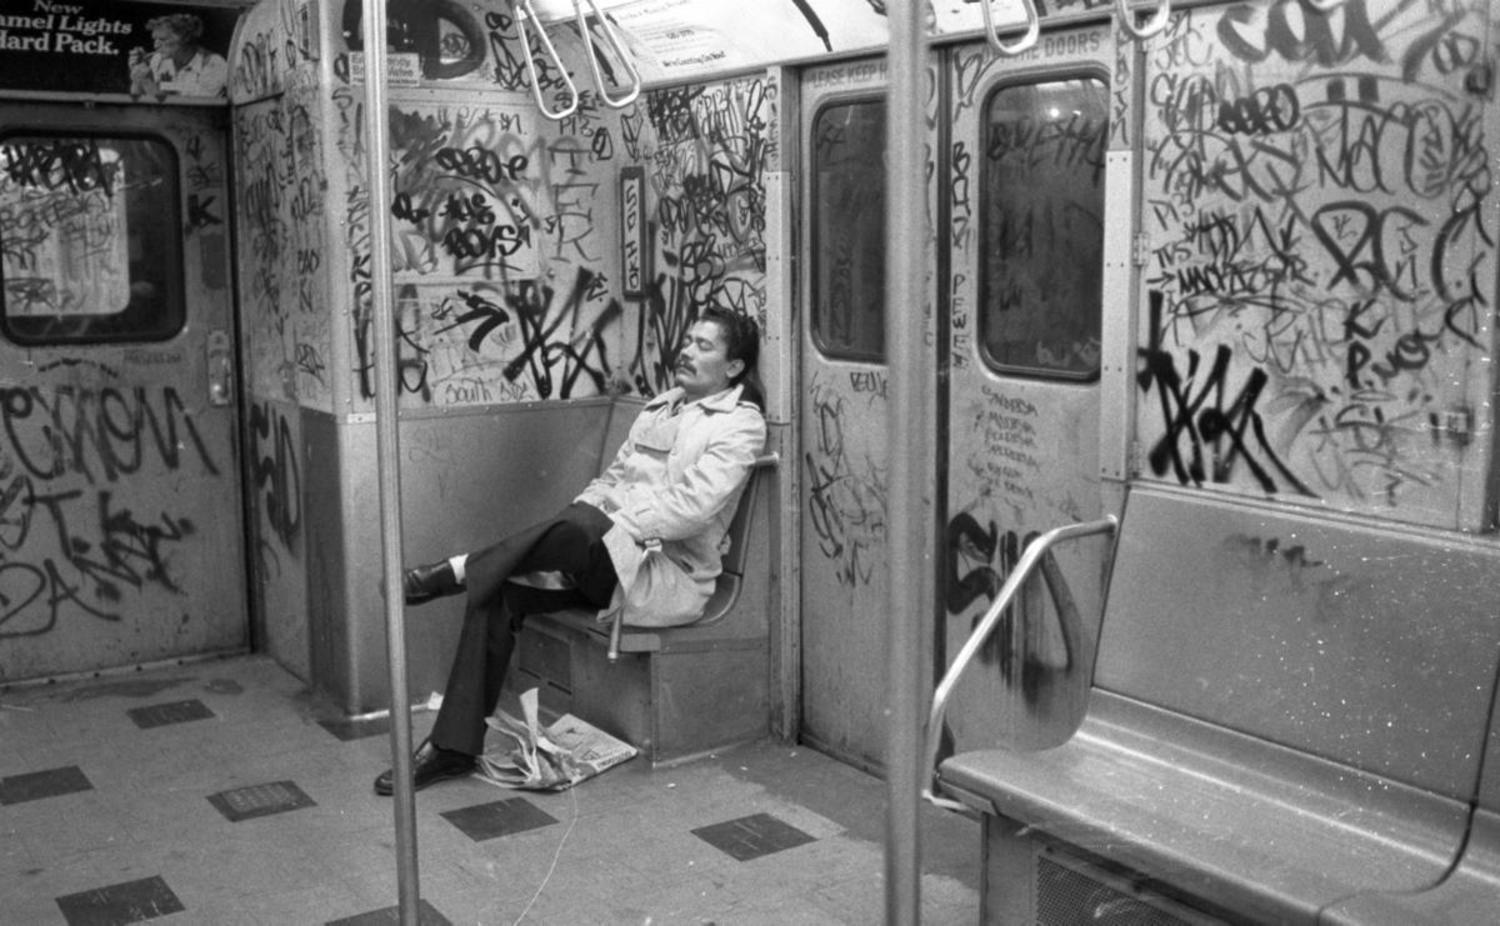 1980's: The writing's on the wall: A tired passenger rests while seated in an empty, graffiti-filled subway car in 1980.